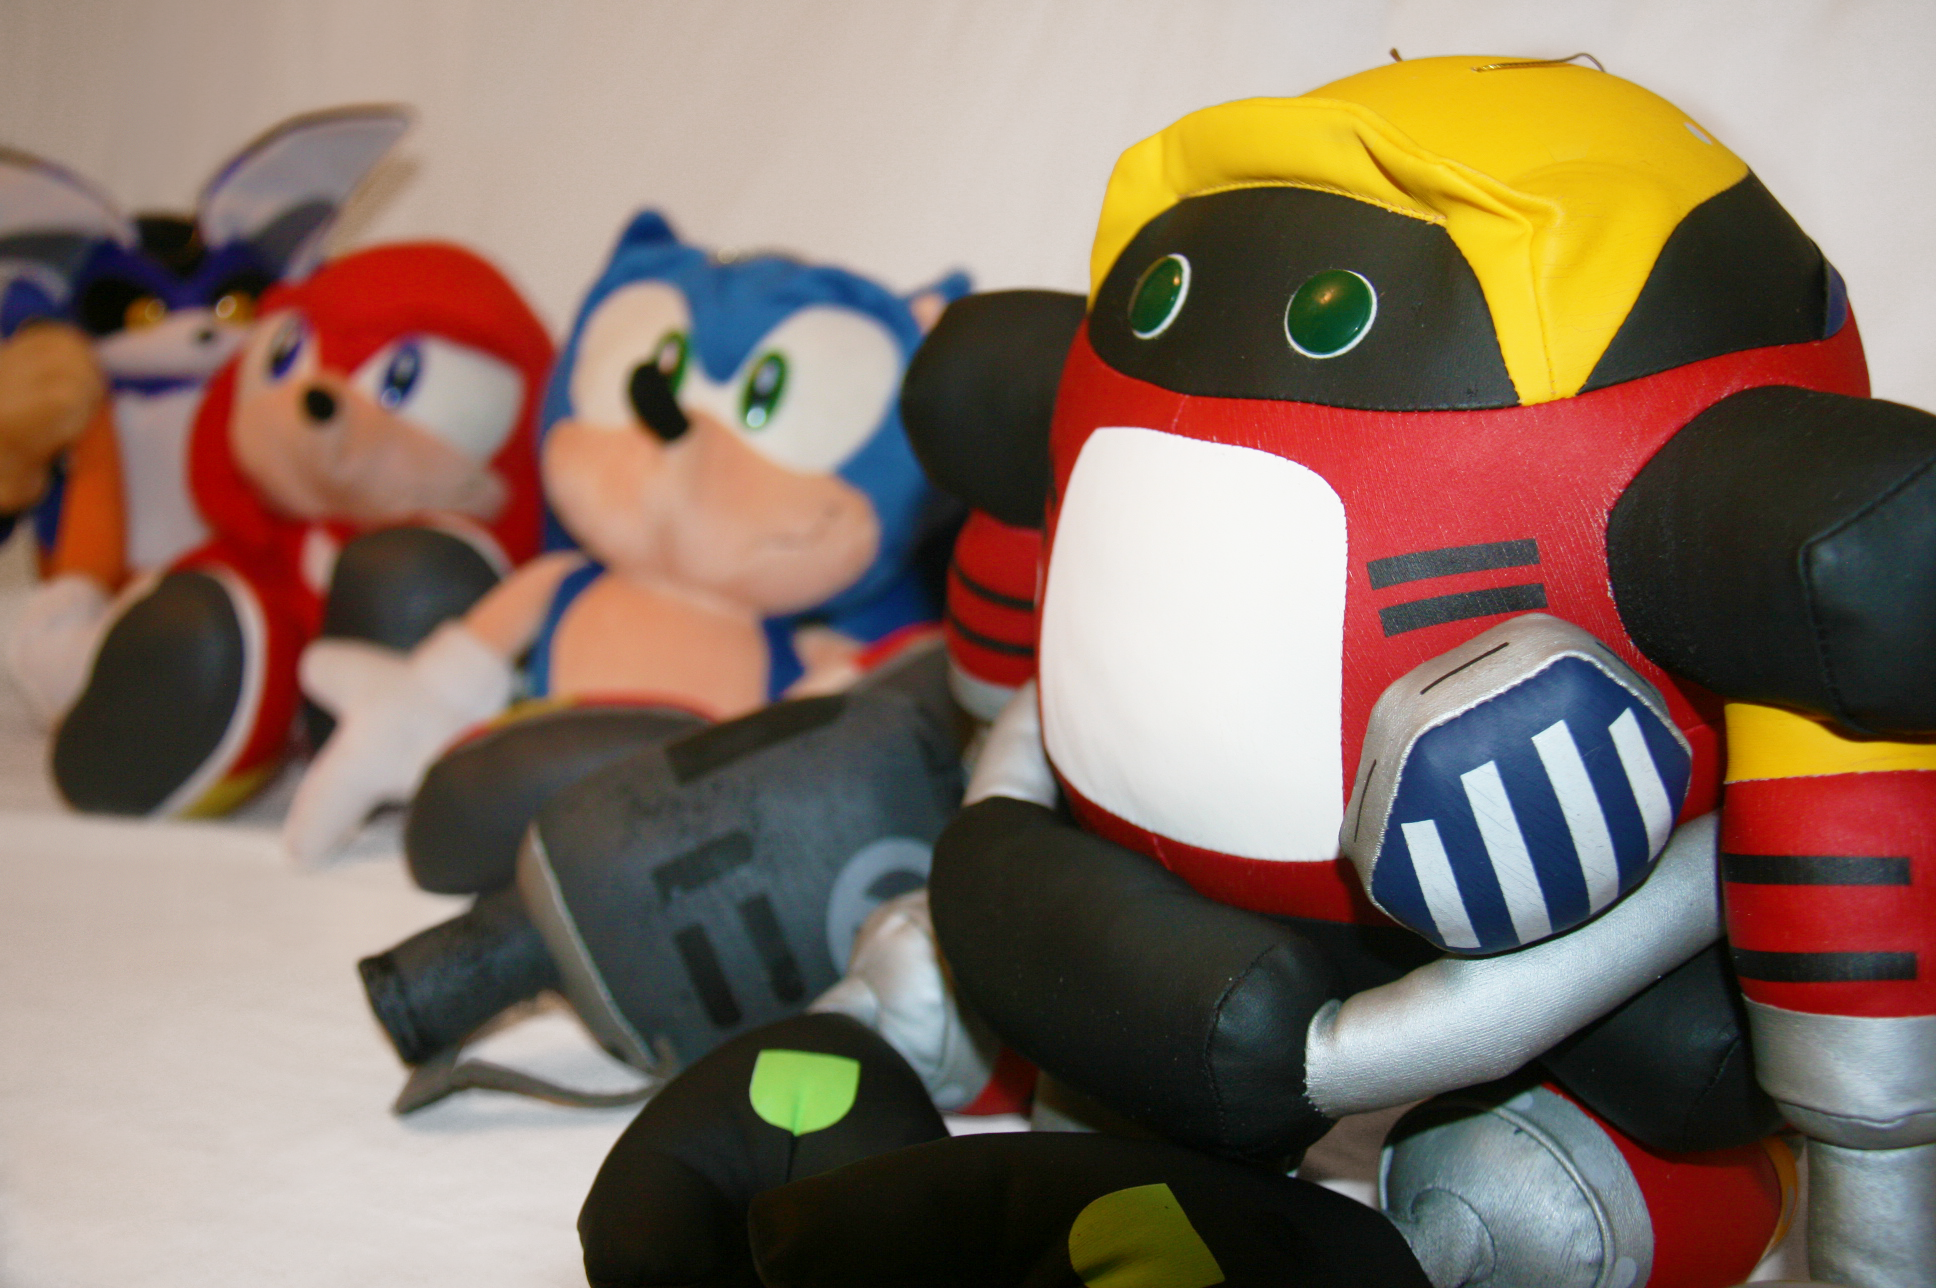 The Top 10 Sonic the Hedgehog Collectables of All Time